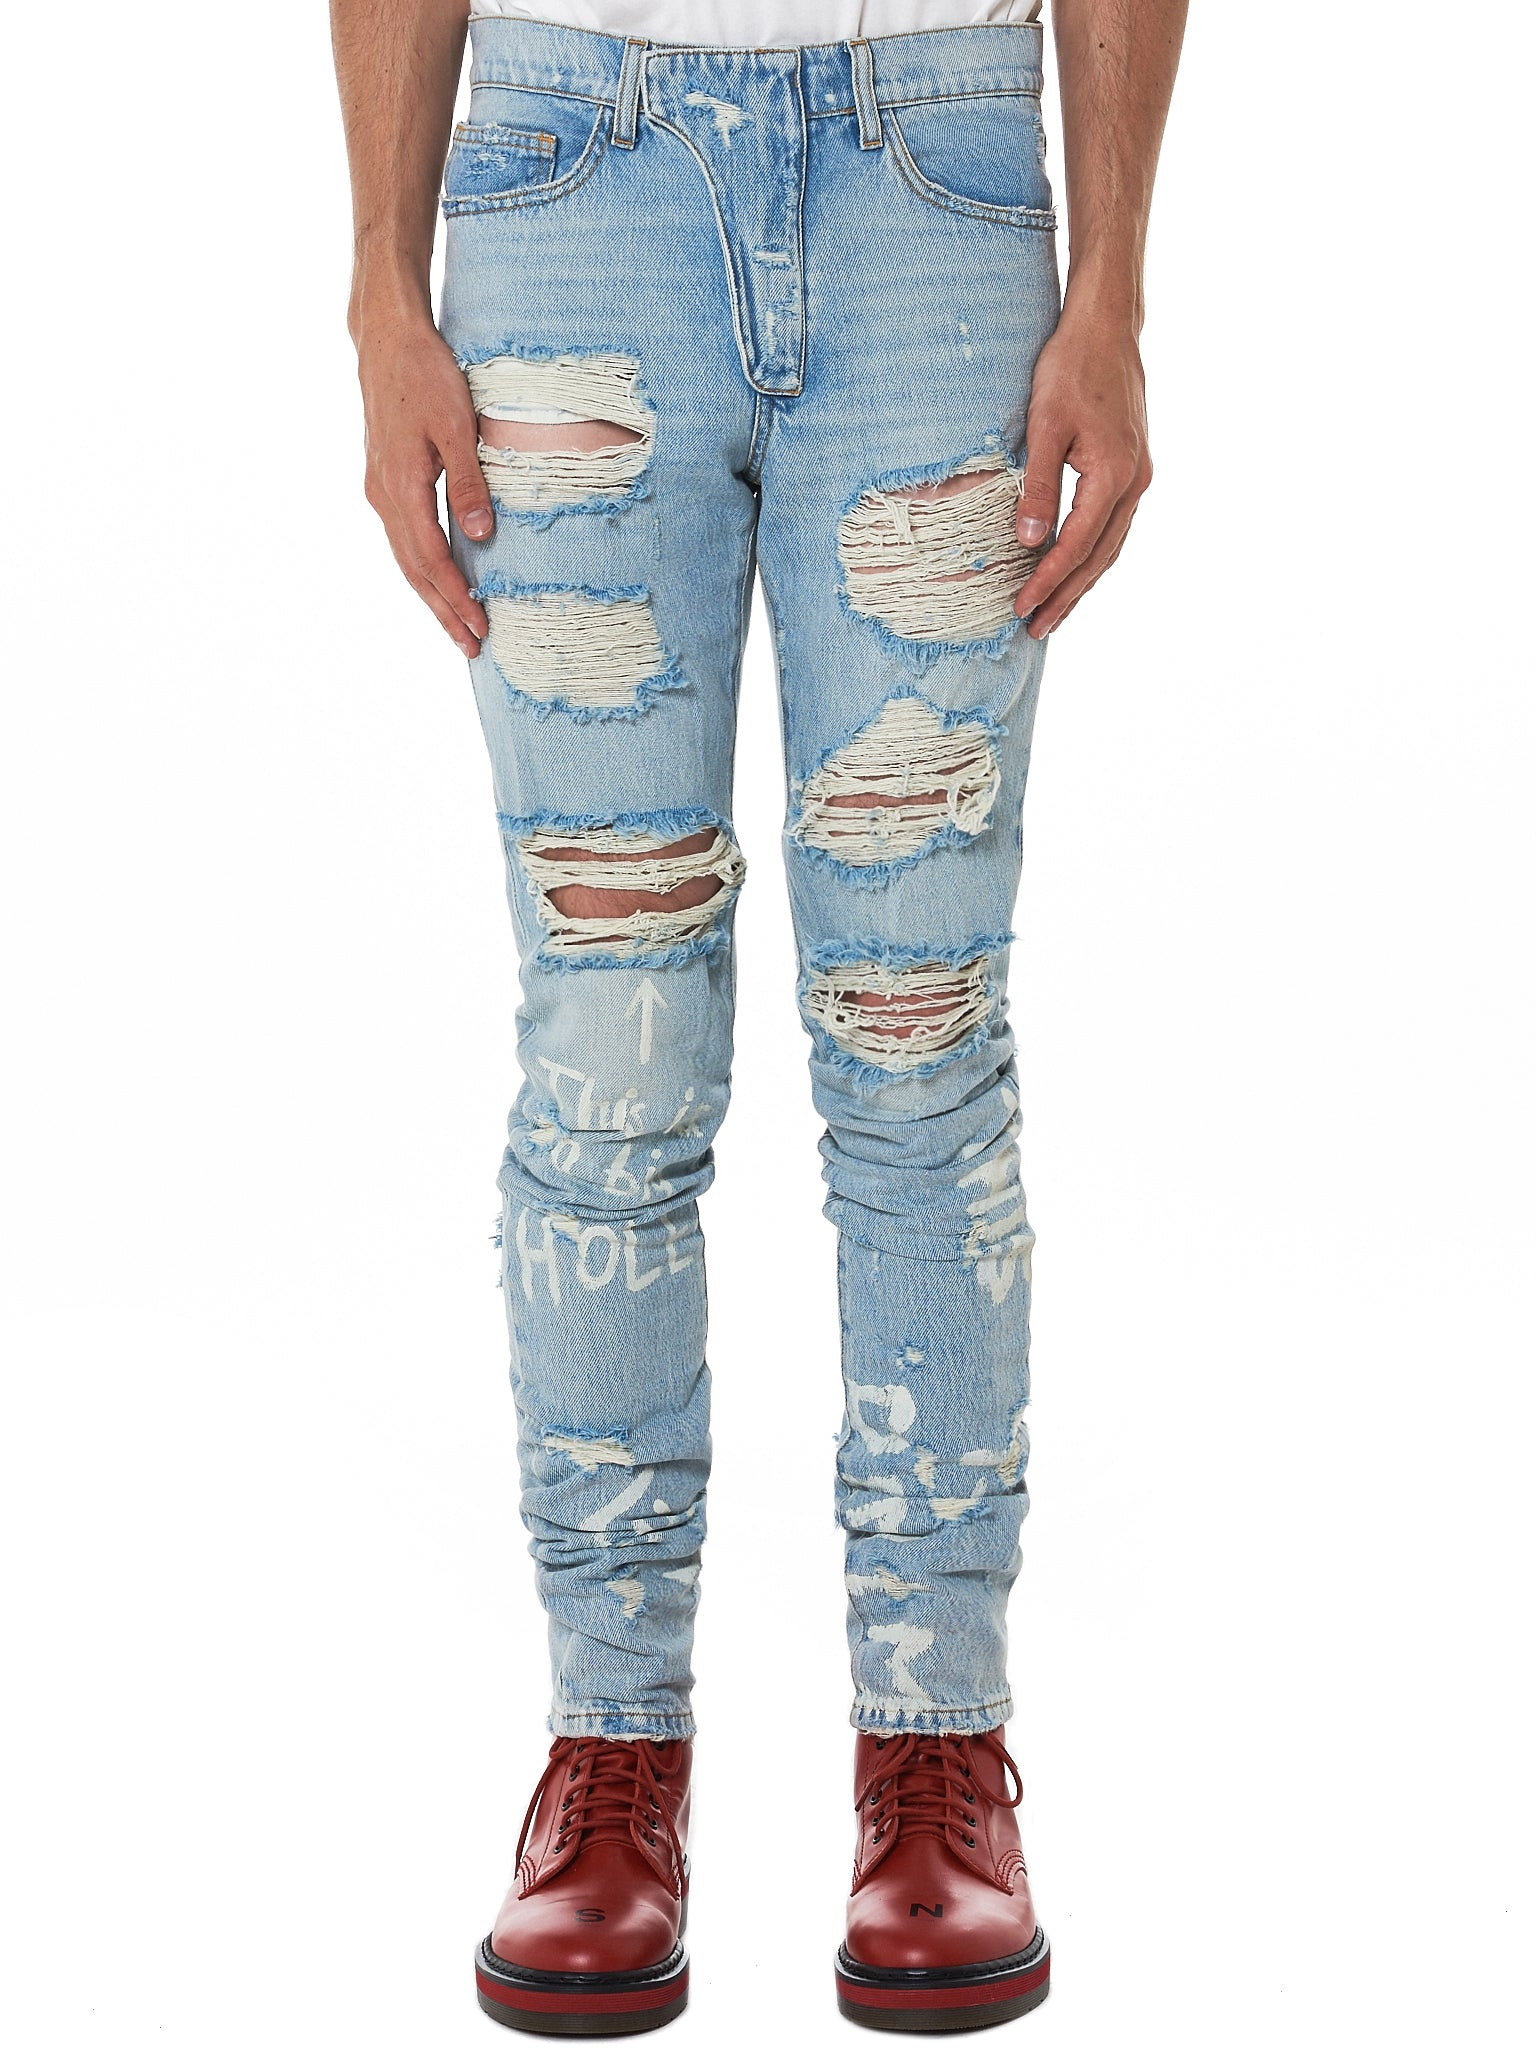 IH NOM UH NIT Distressed Denim - Hlorenzo Front